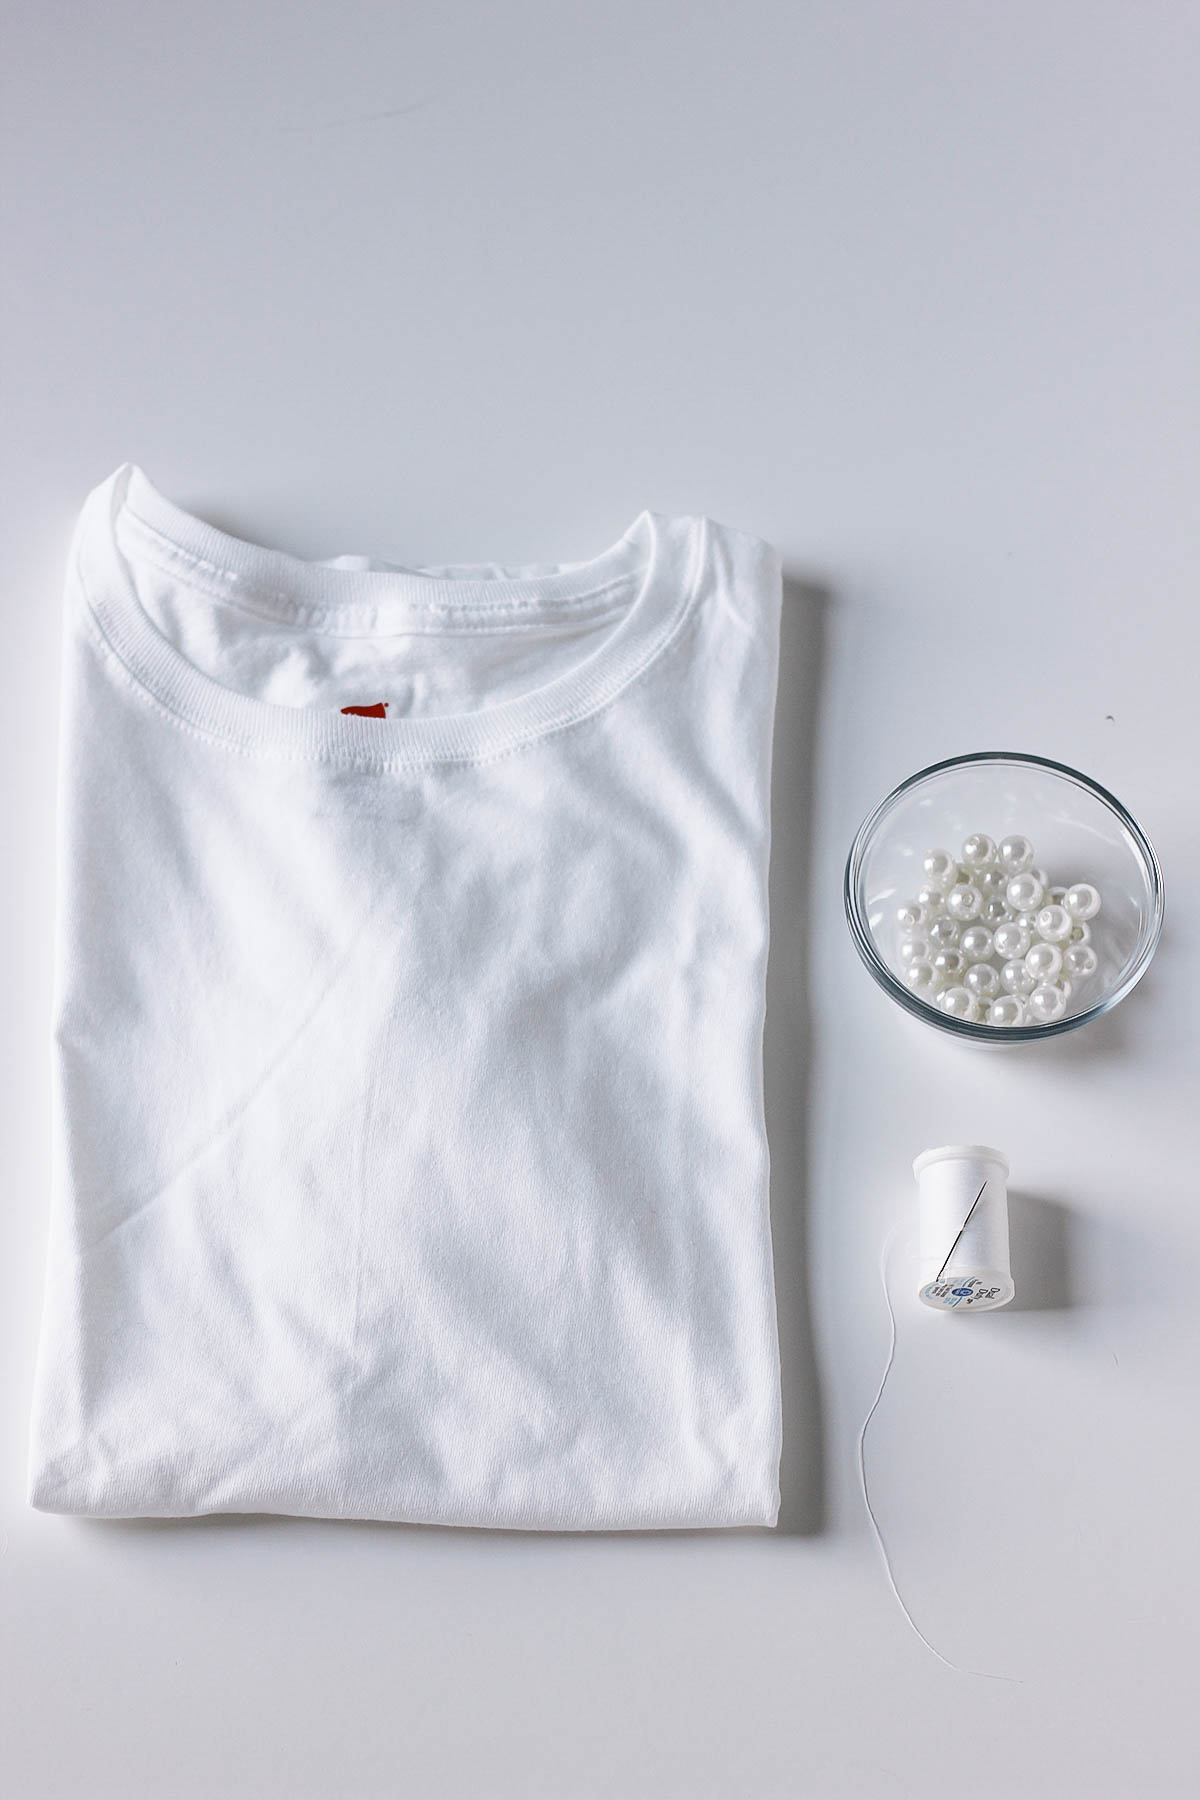 diy-pearl-embellished-t-shirt-1